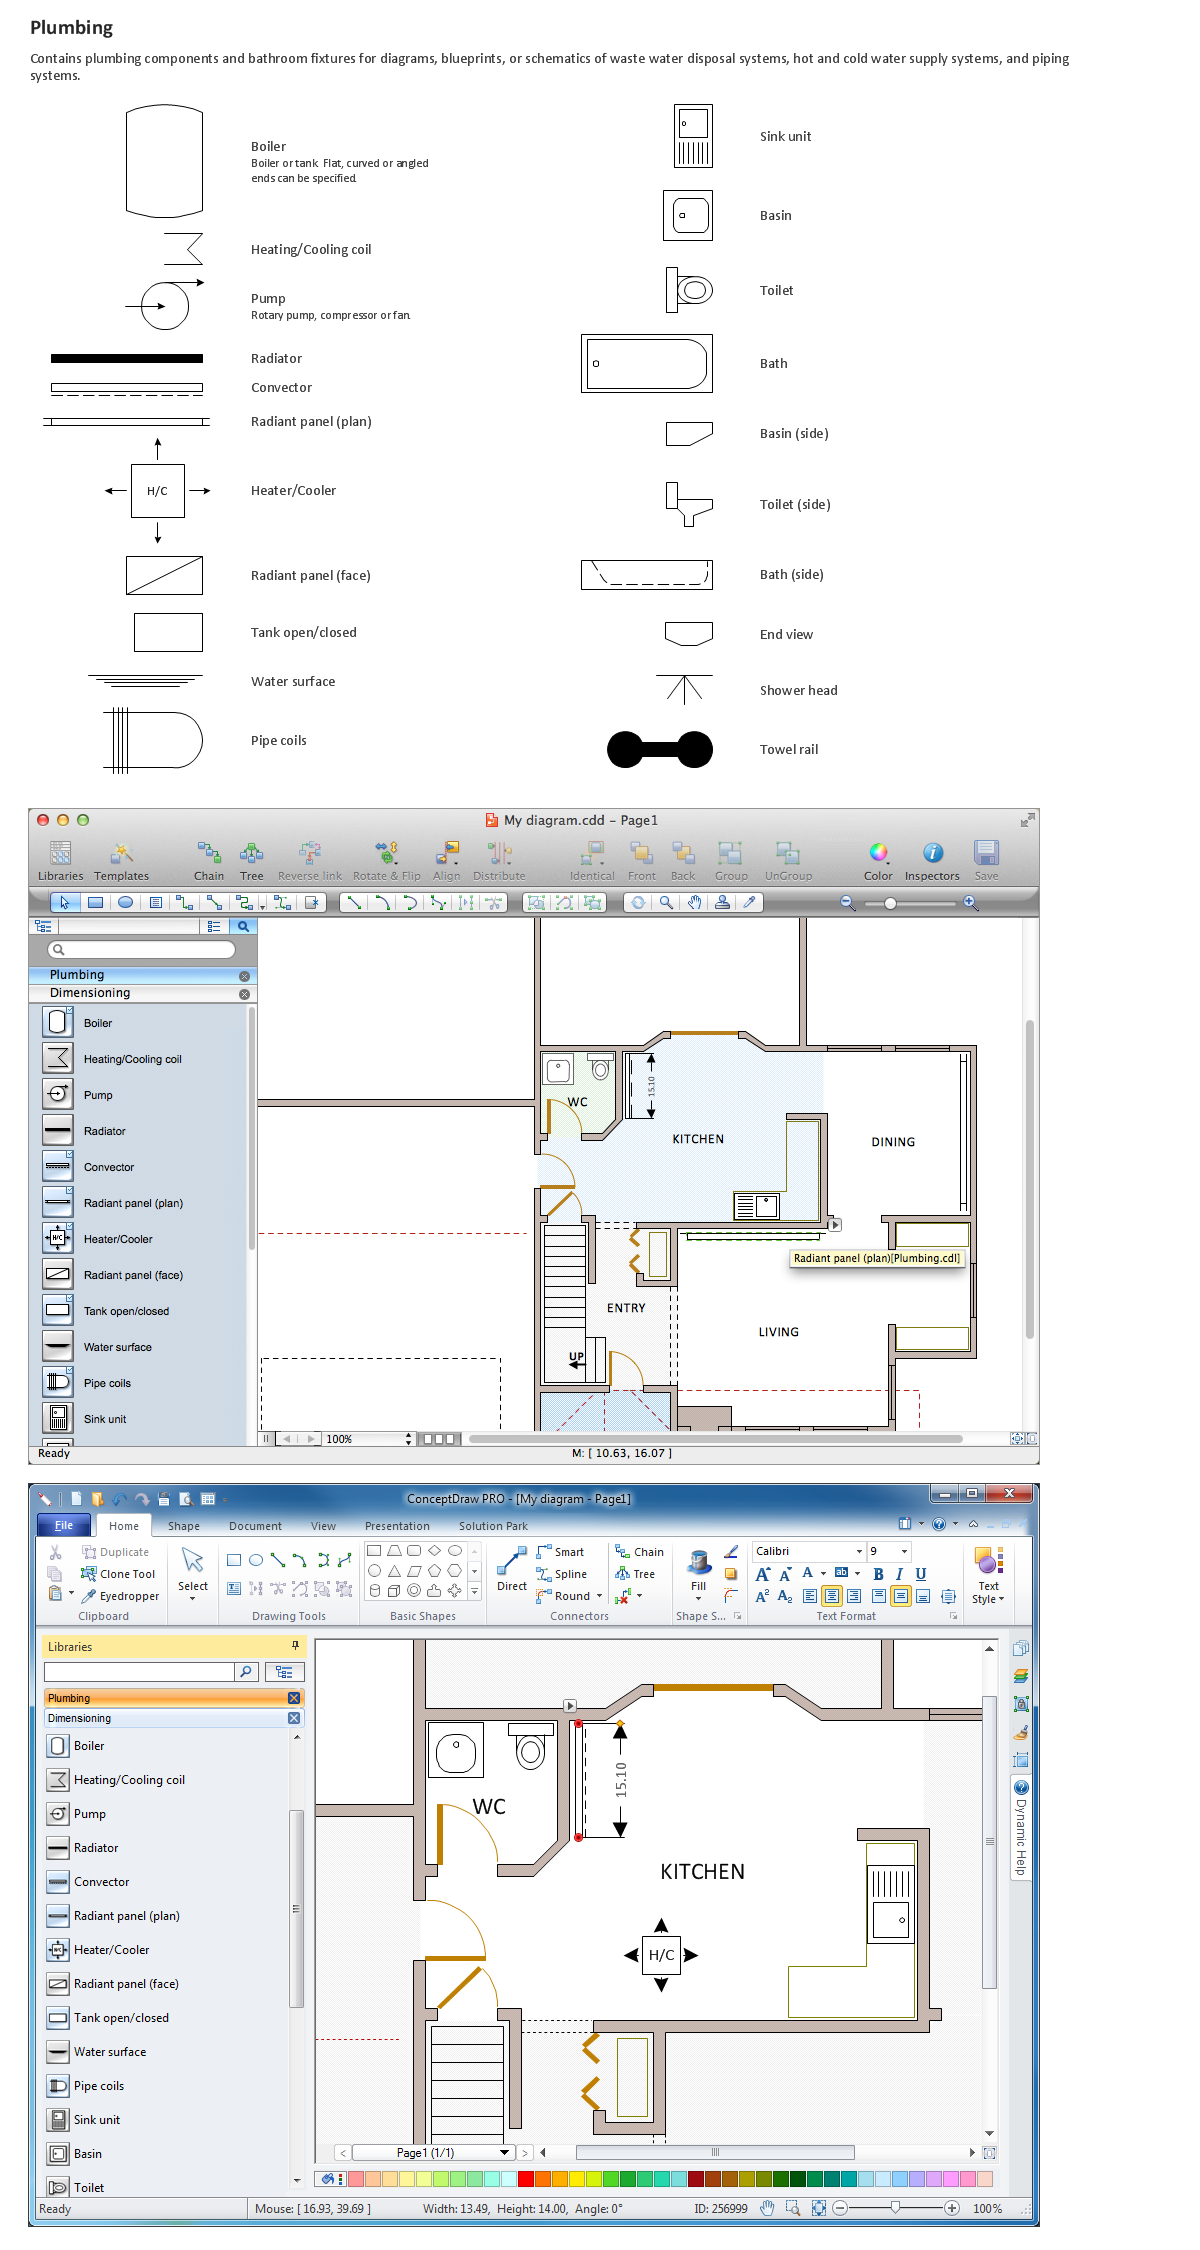 Technical drawing software building drawing design Building drawing software